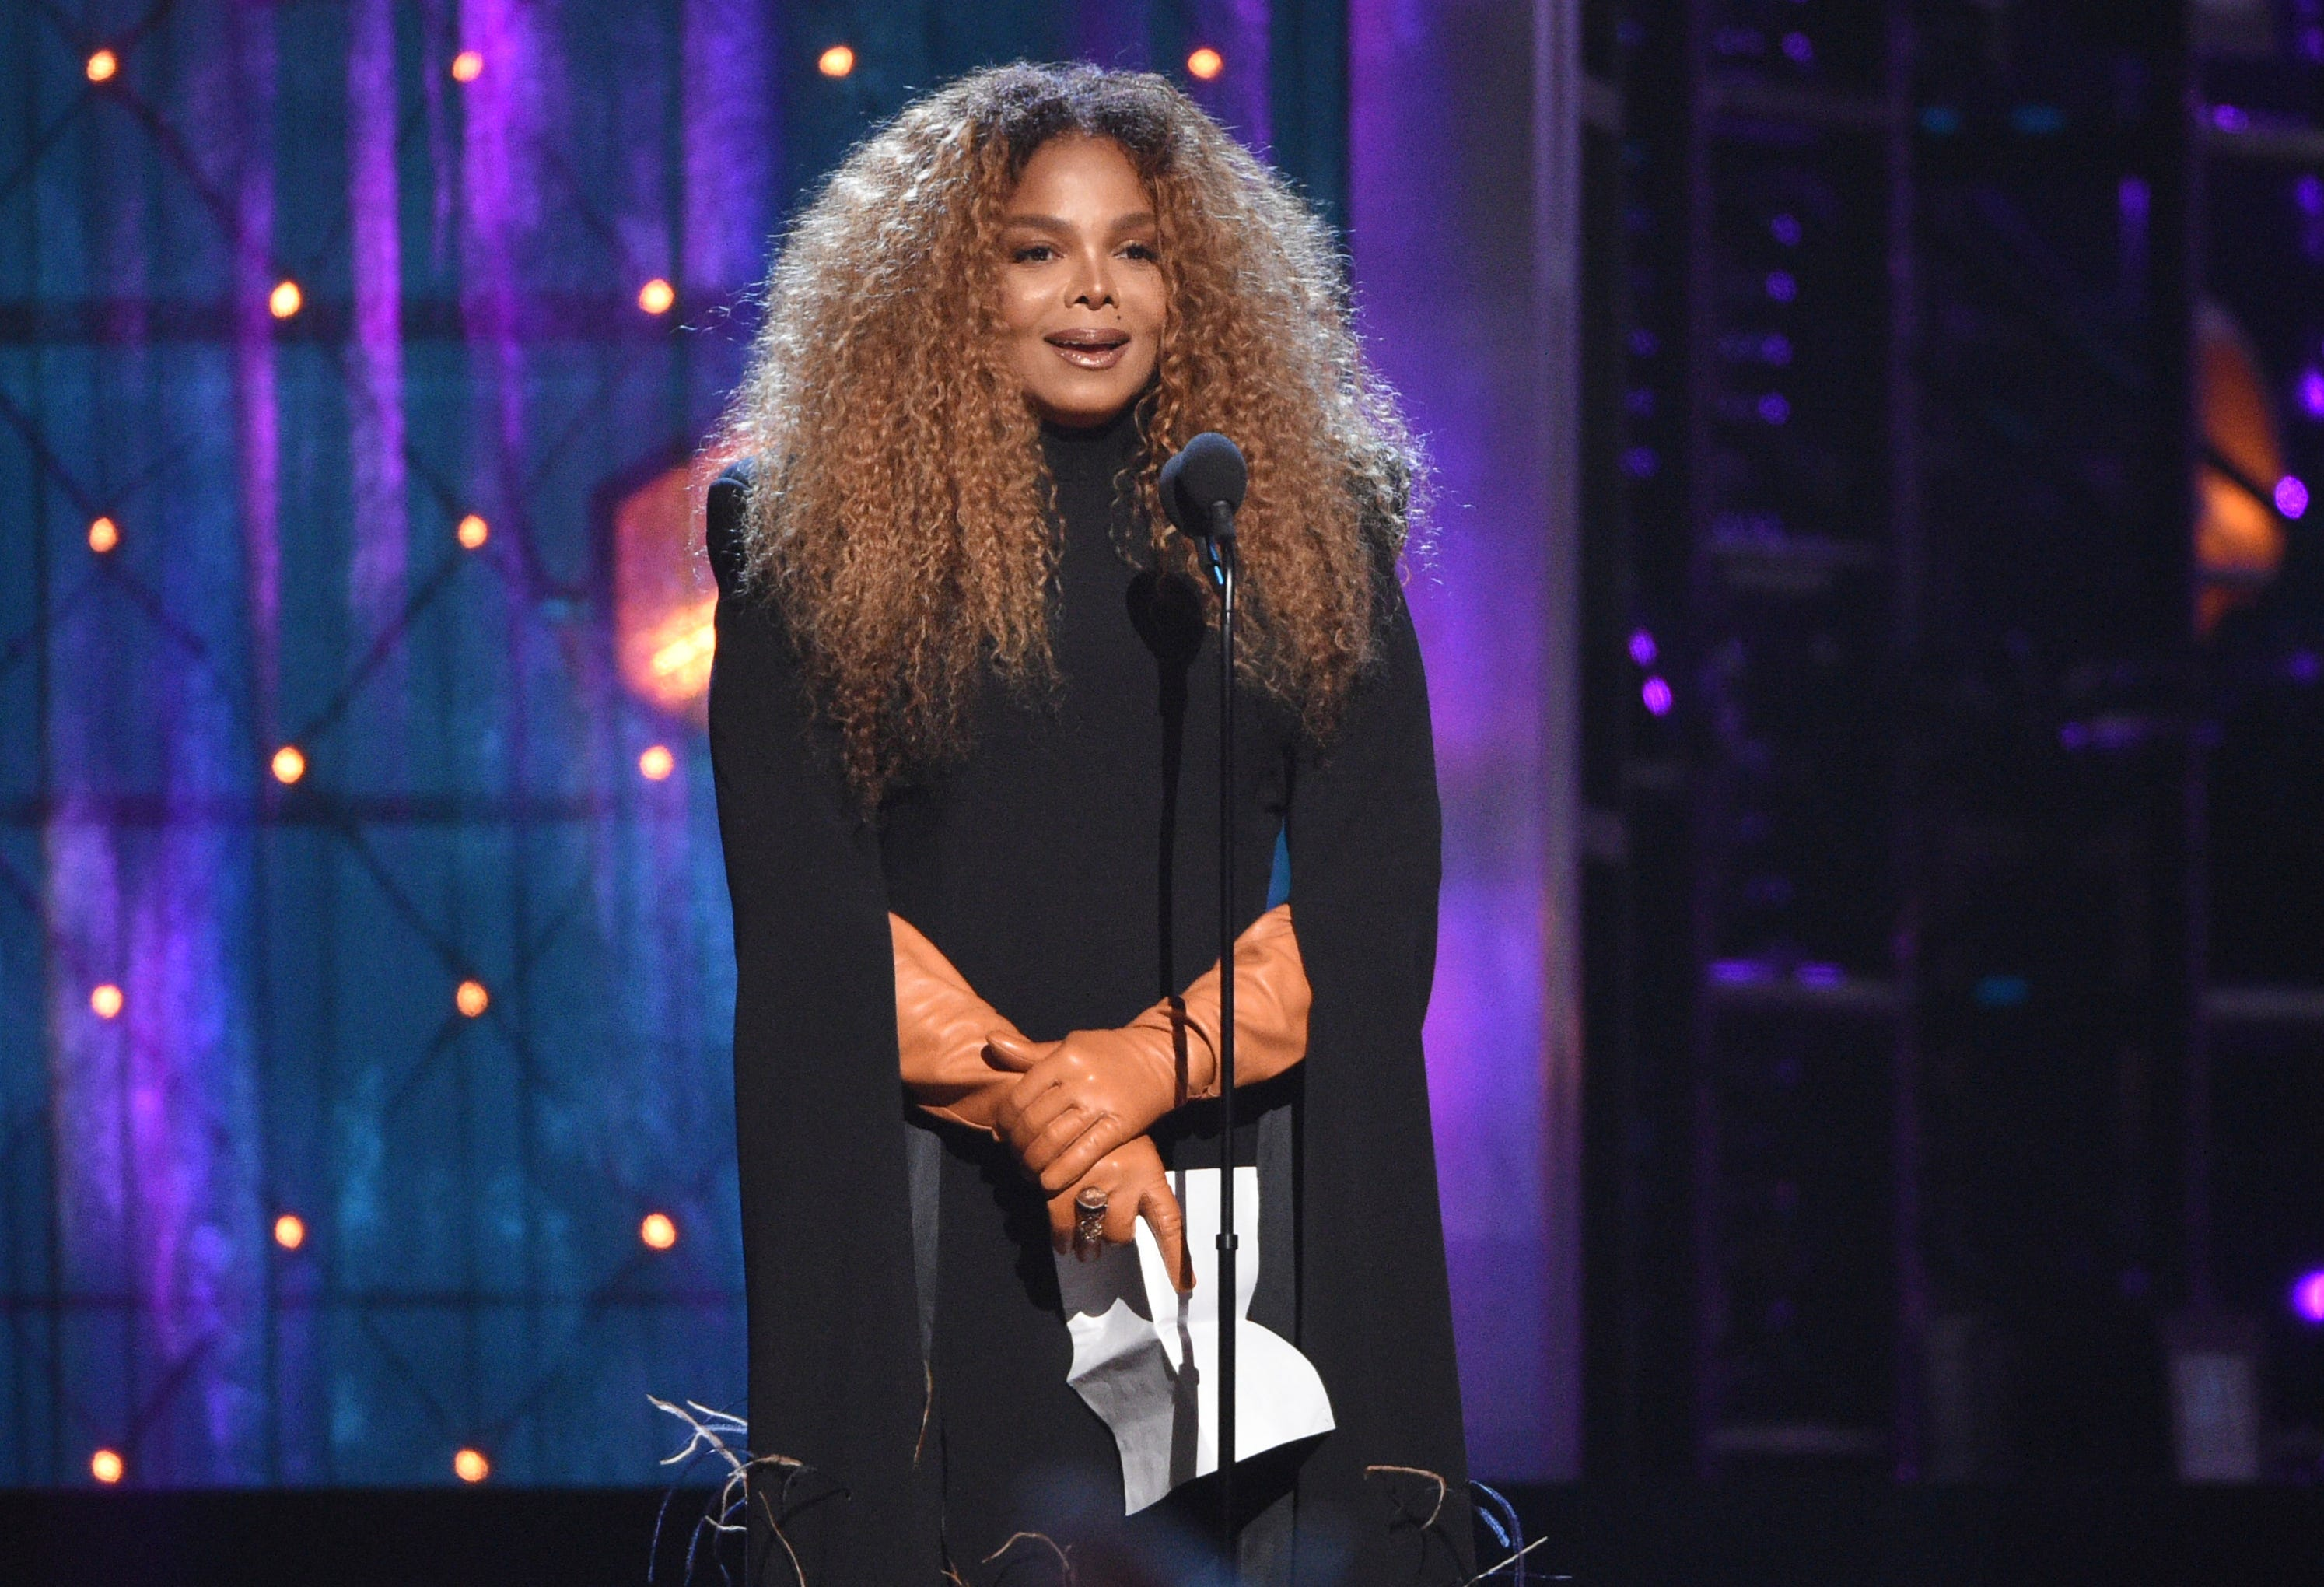 Janet Jackson dedicates Rock Hall honor to 2-year-old son: 'You are my life'